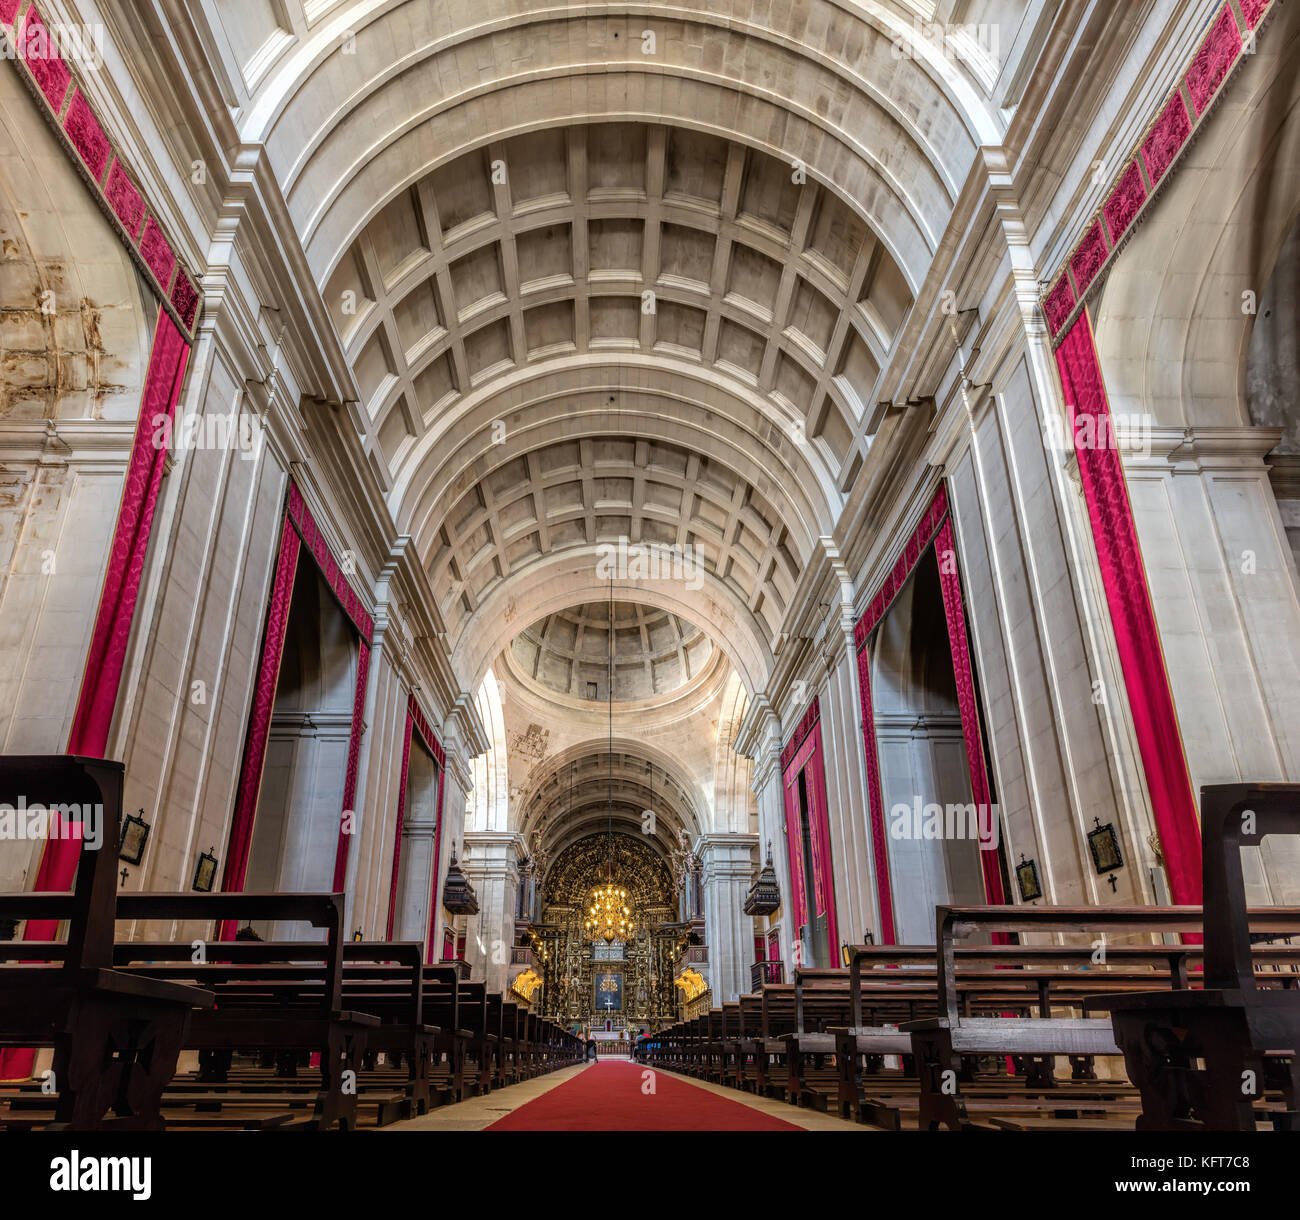 Interior of the New Cathedral of Coimbra, Portugal, previously the church of the Jesuit Formation house of Coimbra - Stock Image